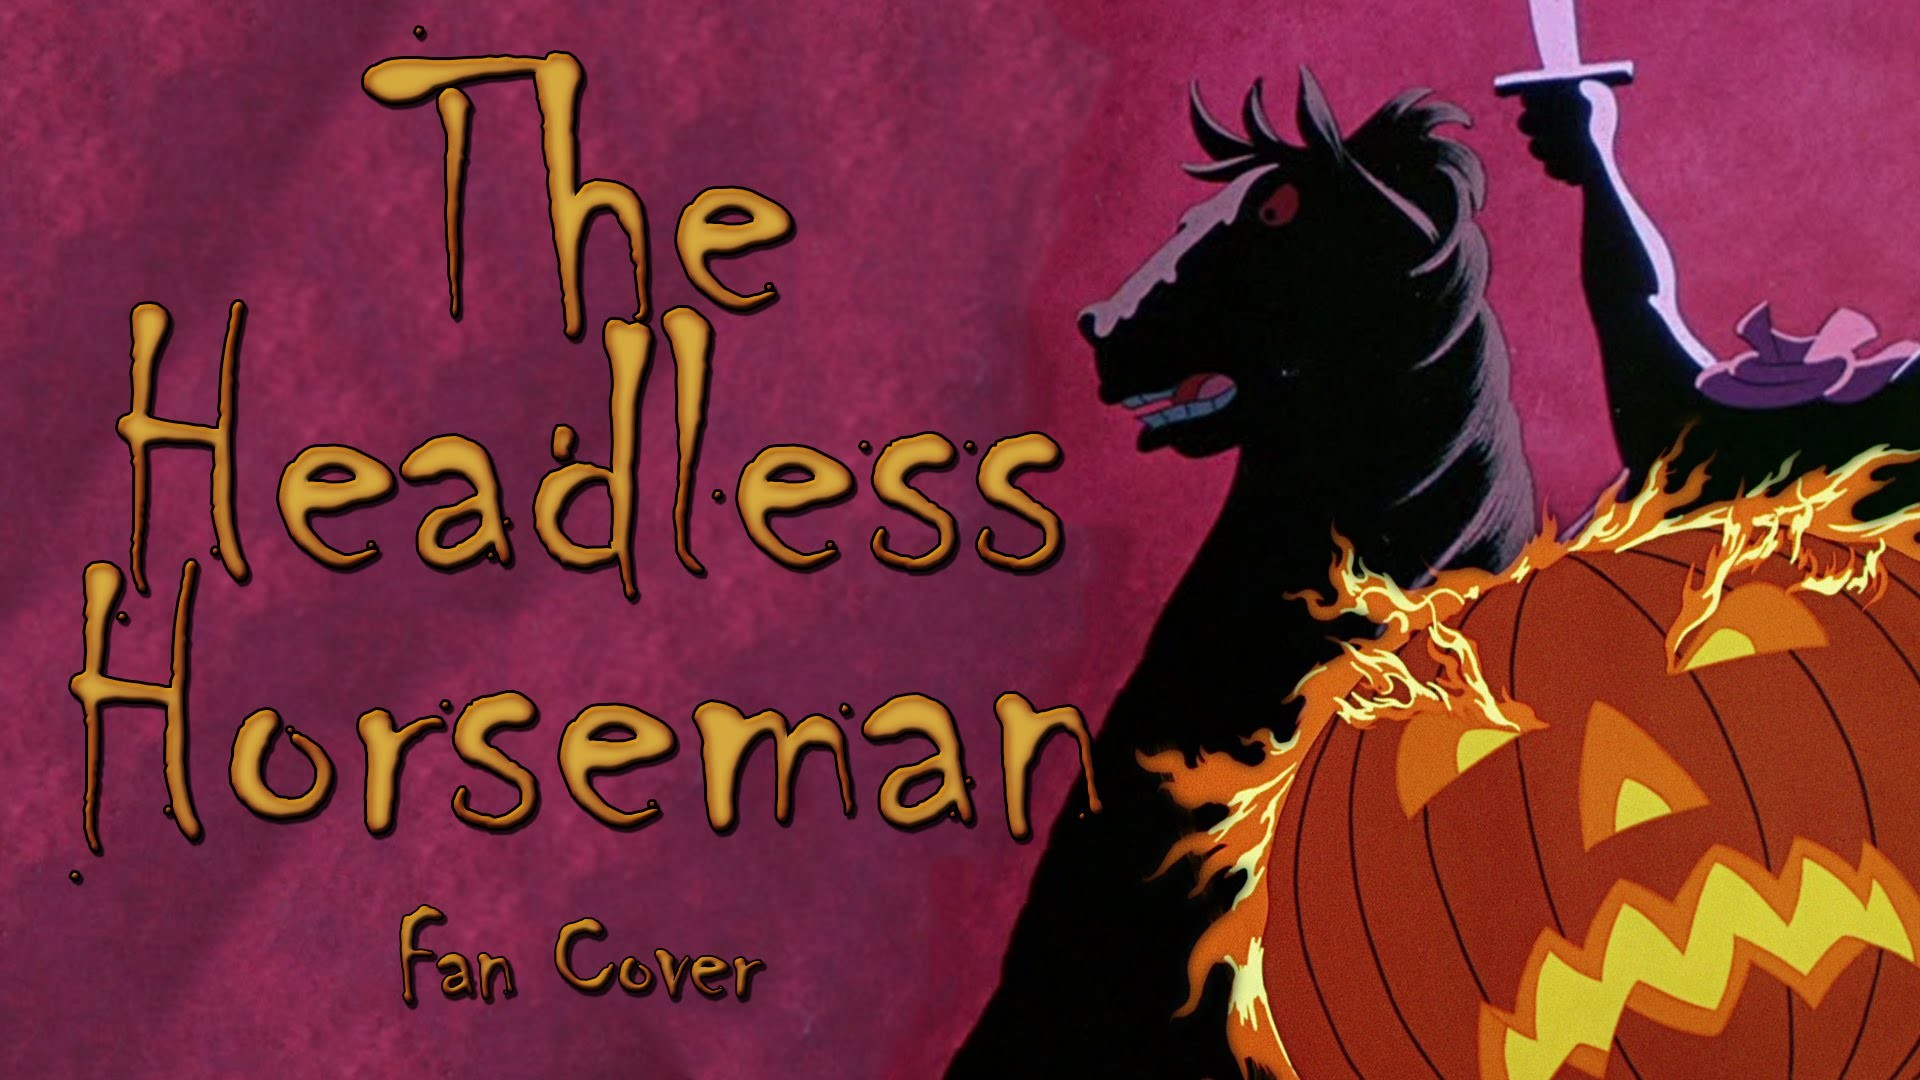 1920x1080 The Headless Horseman - Legend of Sleepy Hollow fan cover (Disney Villain  Month) [RtG] - YouTube